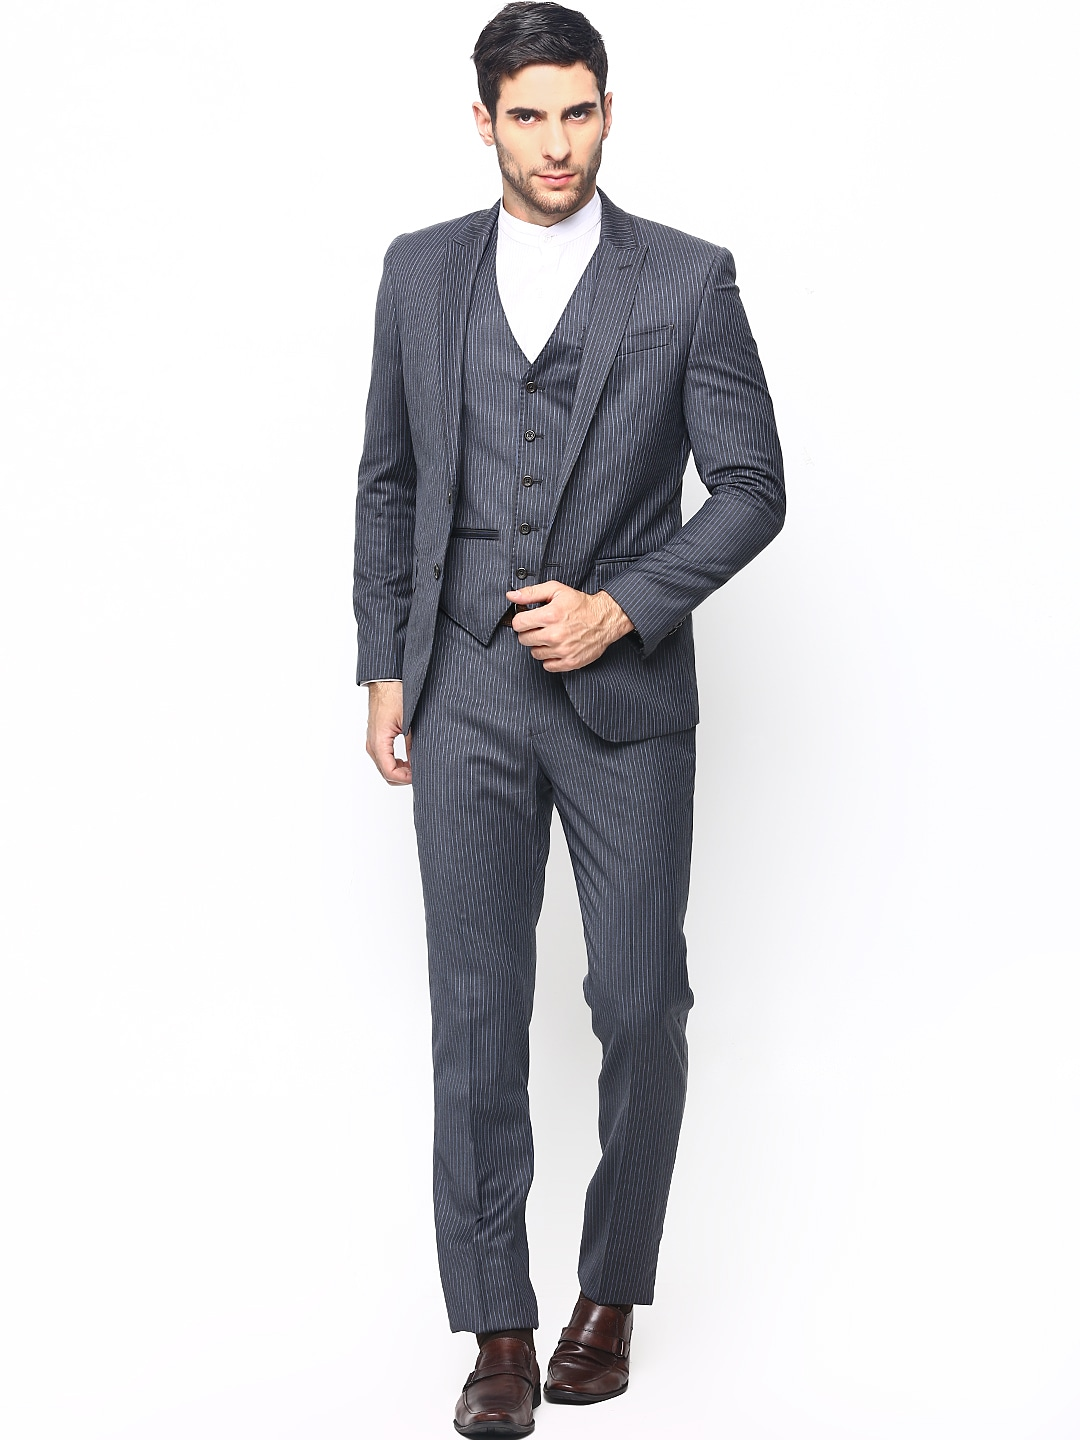 Purchase Suits Online Dress Yy